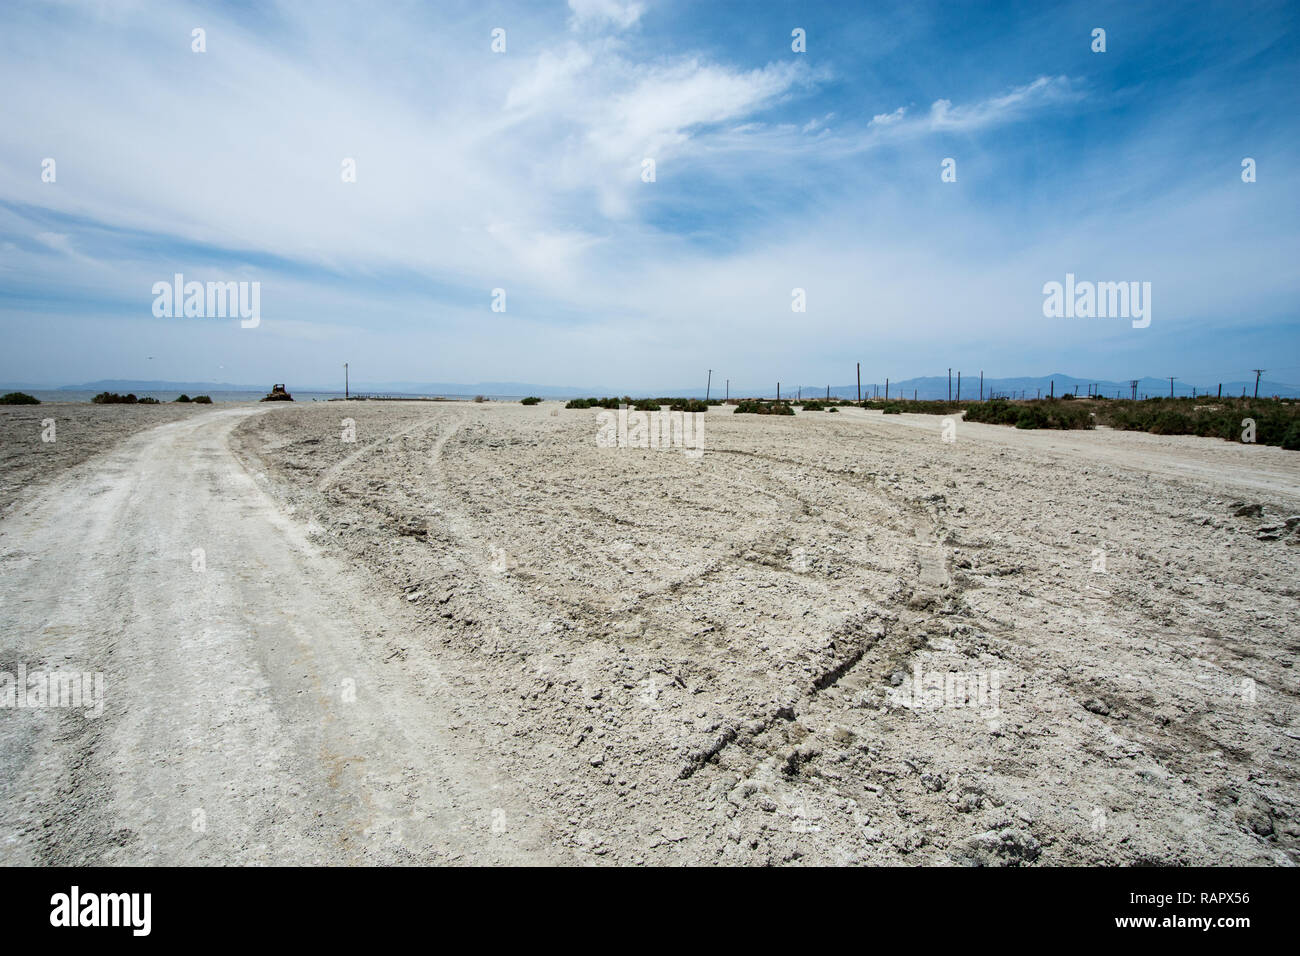 Bombay Beach at the Salton Sea in the desert area of California - Stock Image